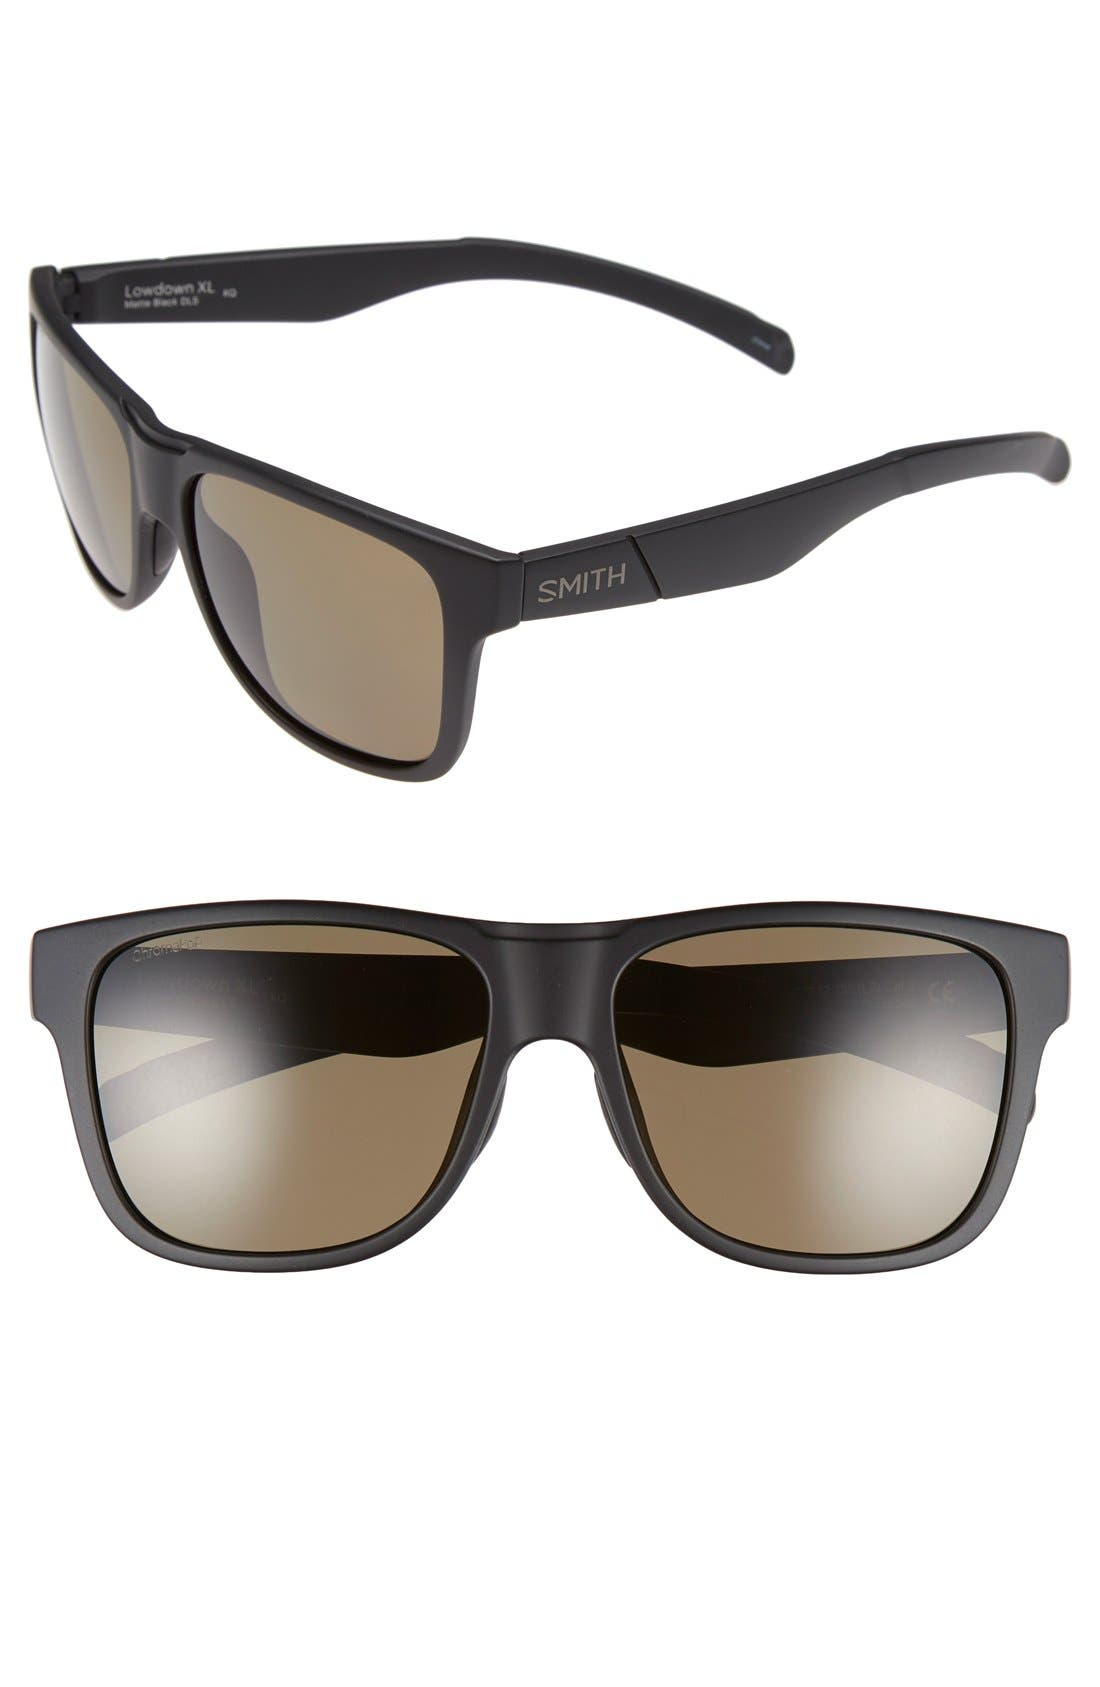 'Lowdown XL' 58mm Polarized Sunglasses,                             Main thumbnail 1, color,                             001